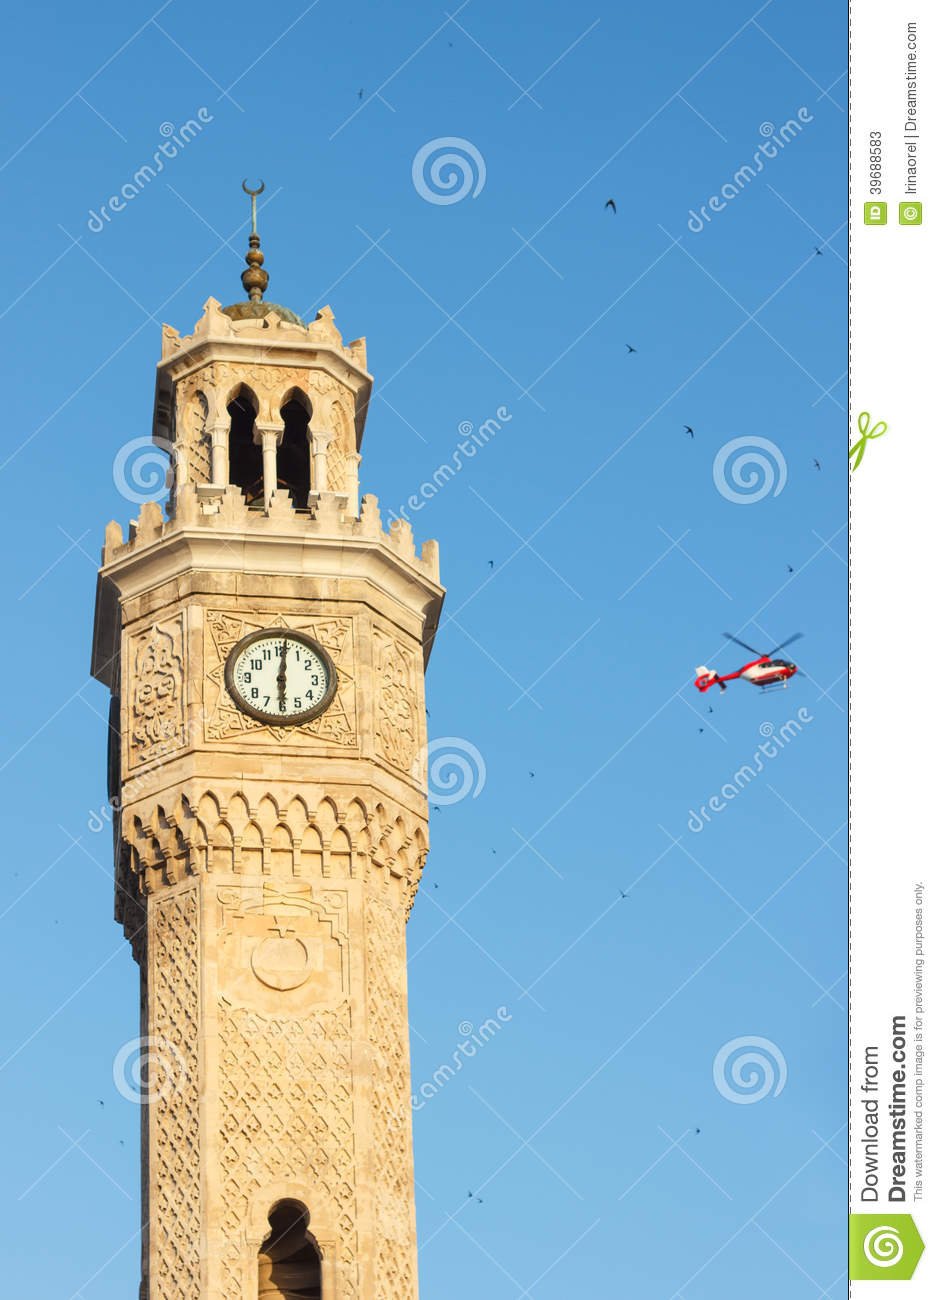 Saat Kulesi (Clock Tower) and helicopter